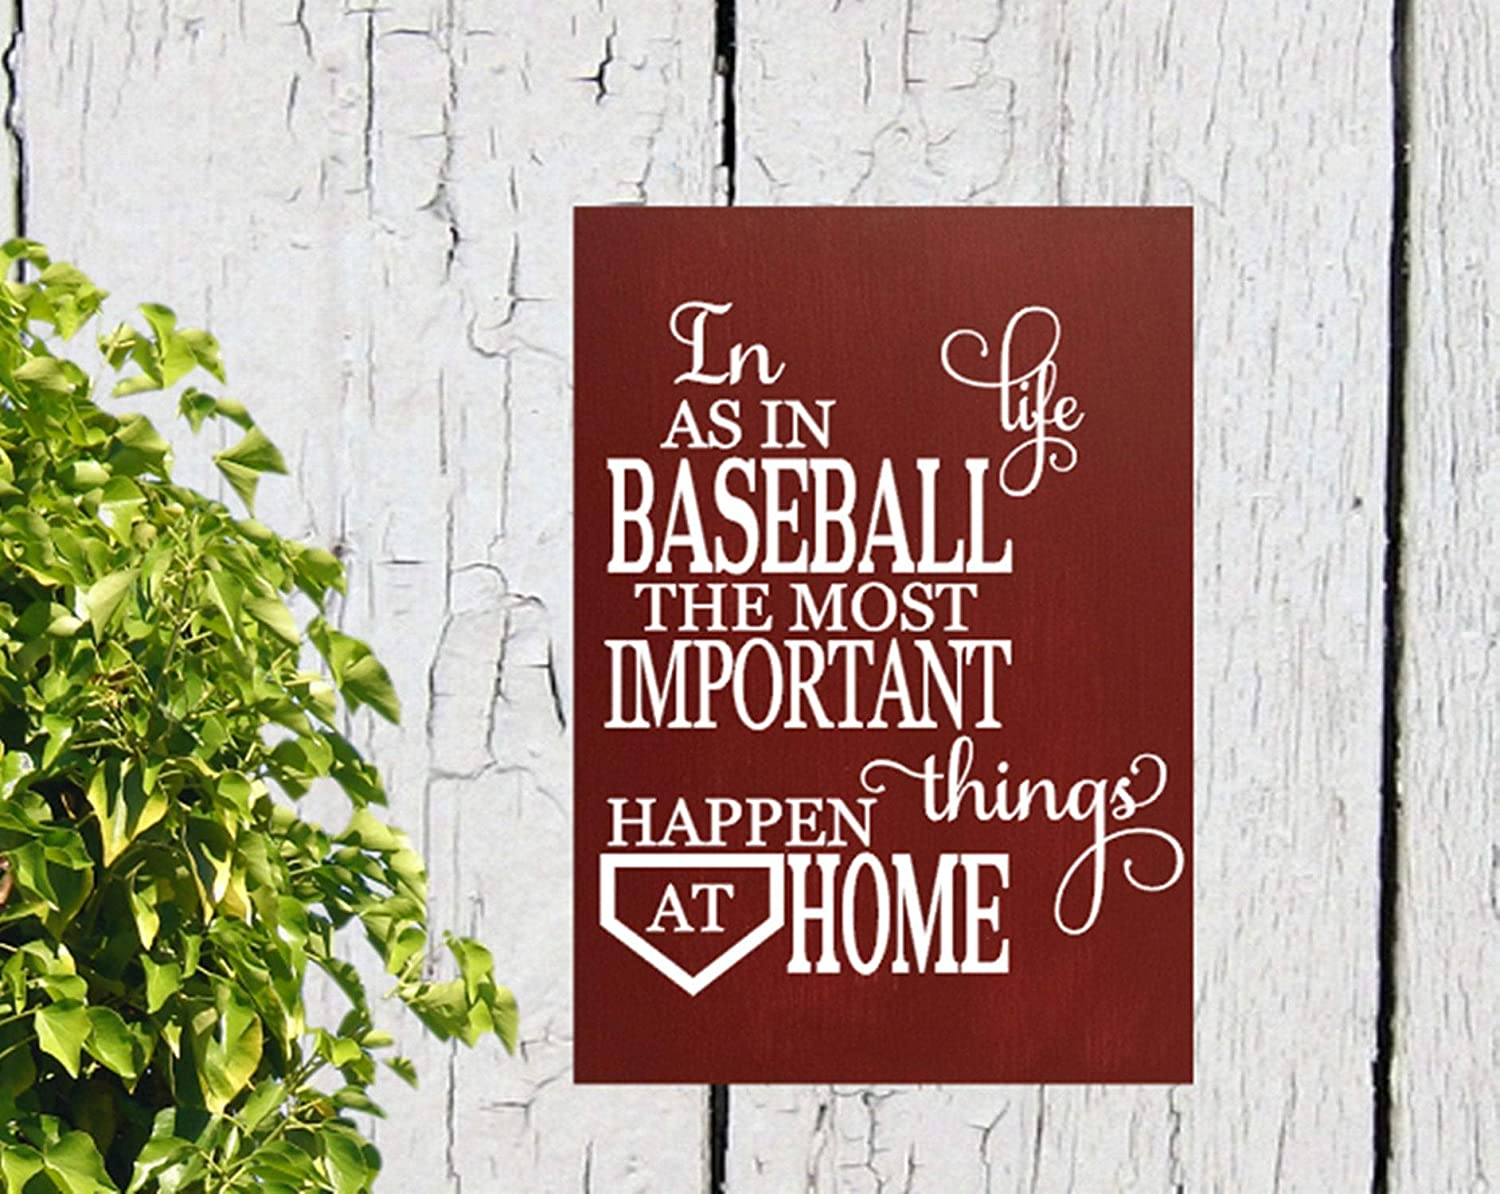 43LenaJon Baseball in Life as in Baseball The Important Things Happen at Home Shabby Chic Wood Sign